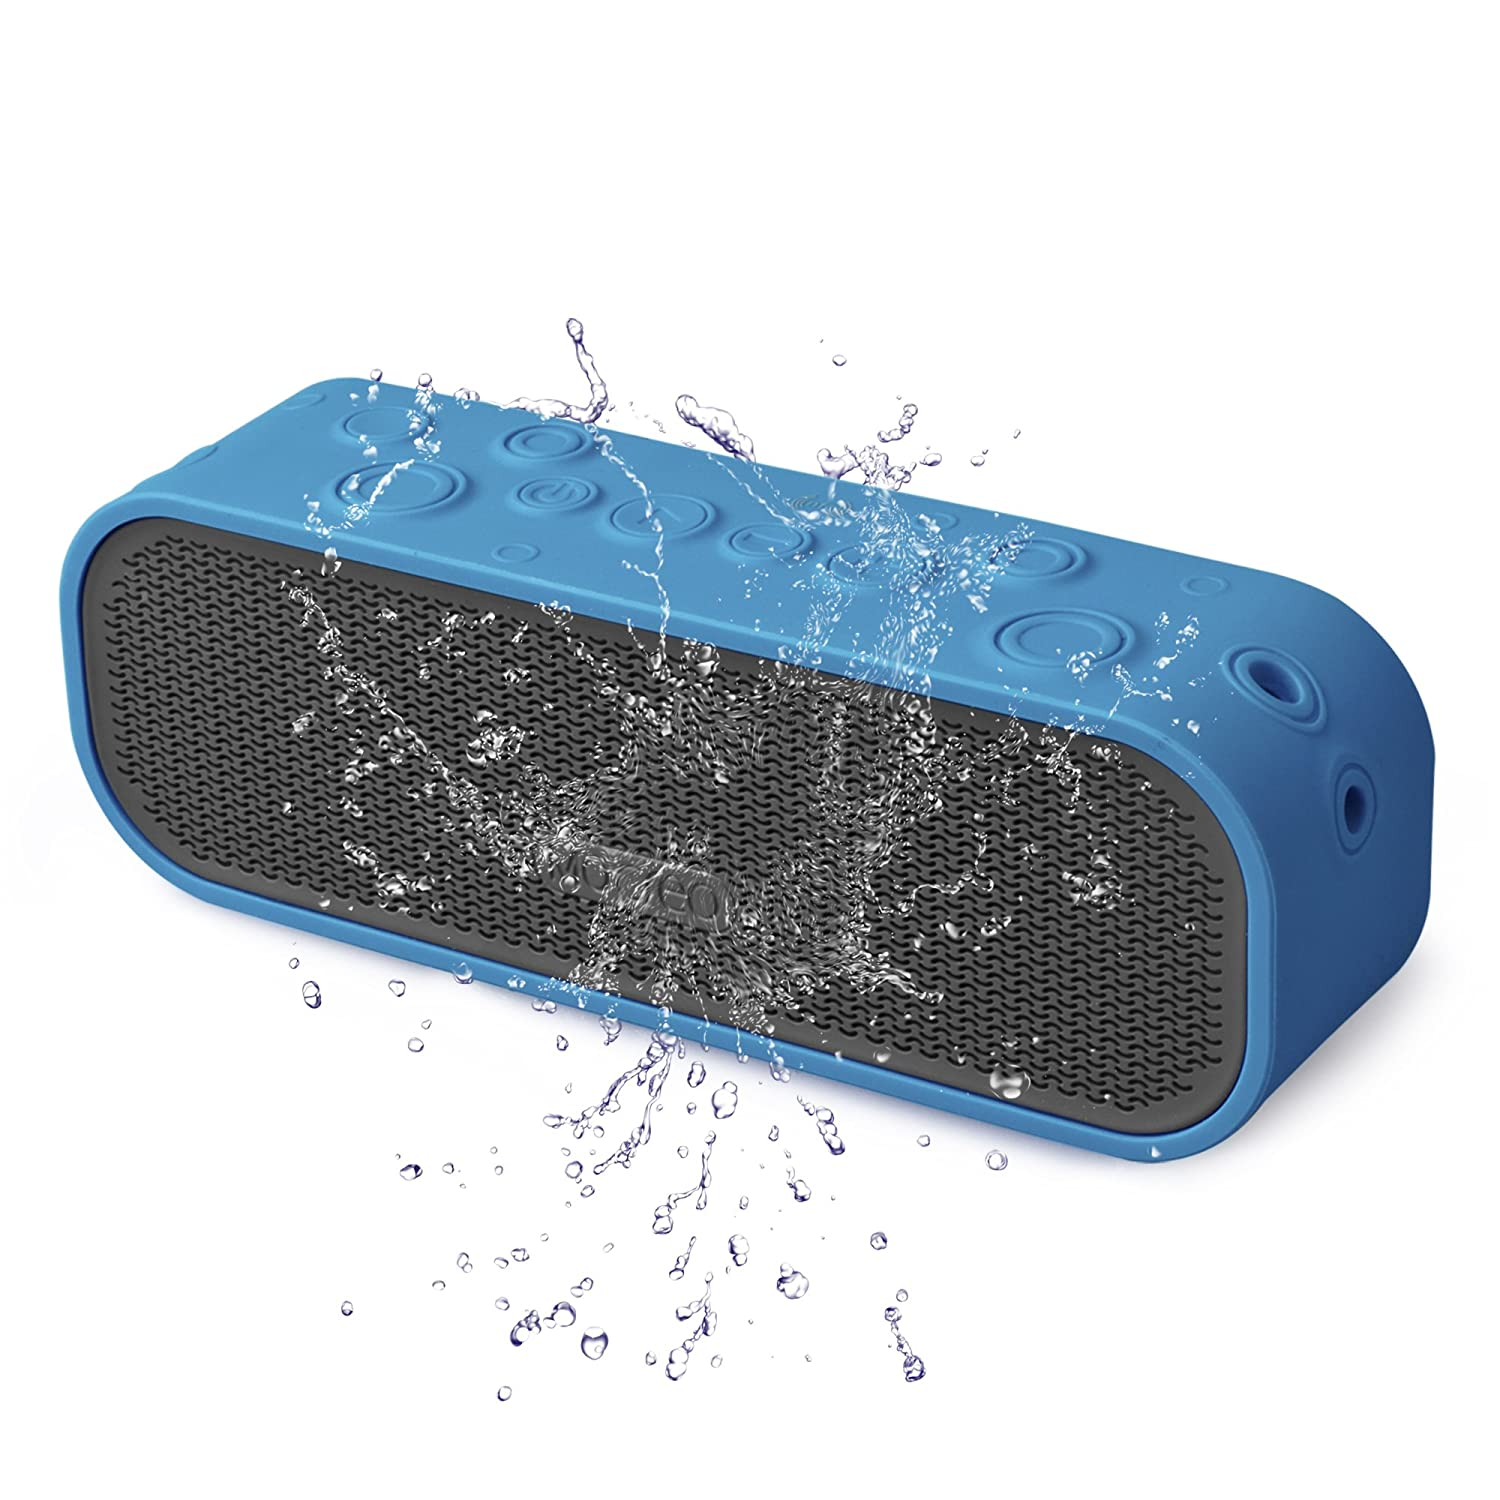 MOCREO® Water-resistant NFC Portable Bluetooth Speaker Rugged Splash Proof + Hands-free Speakerphone w/ Built-in Mic + Dual Stereo Speakers + TF Card Slot Indoor/Outdoors Waterproof Speaker IPX5 + Latest Bluetooth 4.0 W/ NFC Compatible w/ Apple iPhone 6 lycheers waterproof wireless fm radio bluetooth mini shower stereo speaker with hook handle and hands free speakerphone